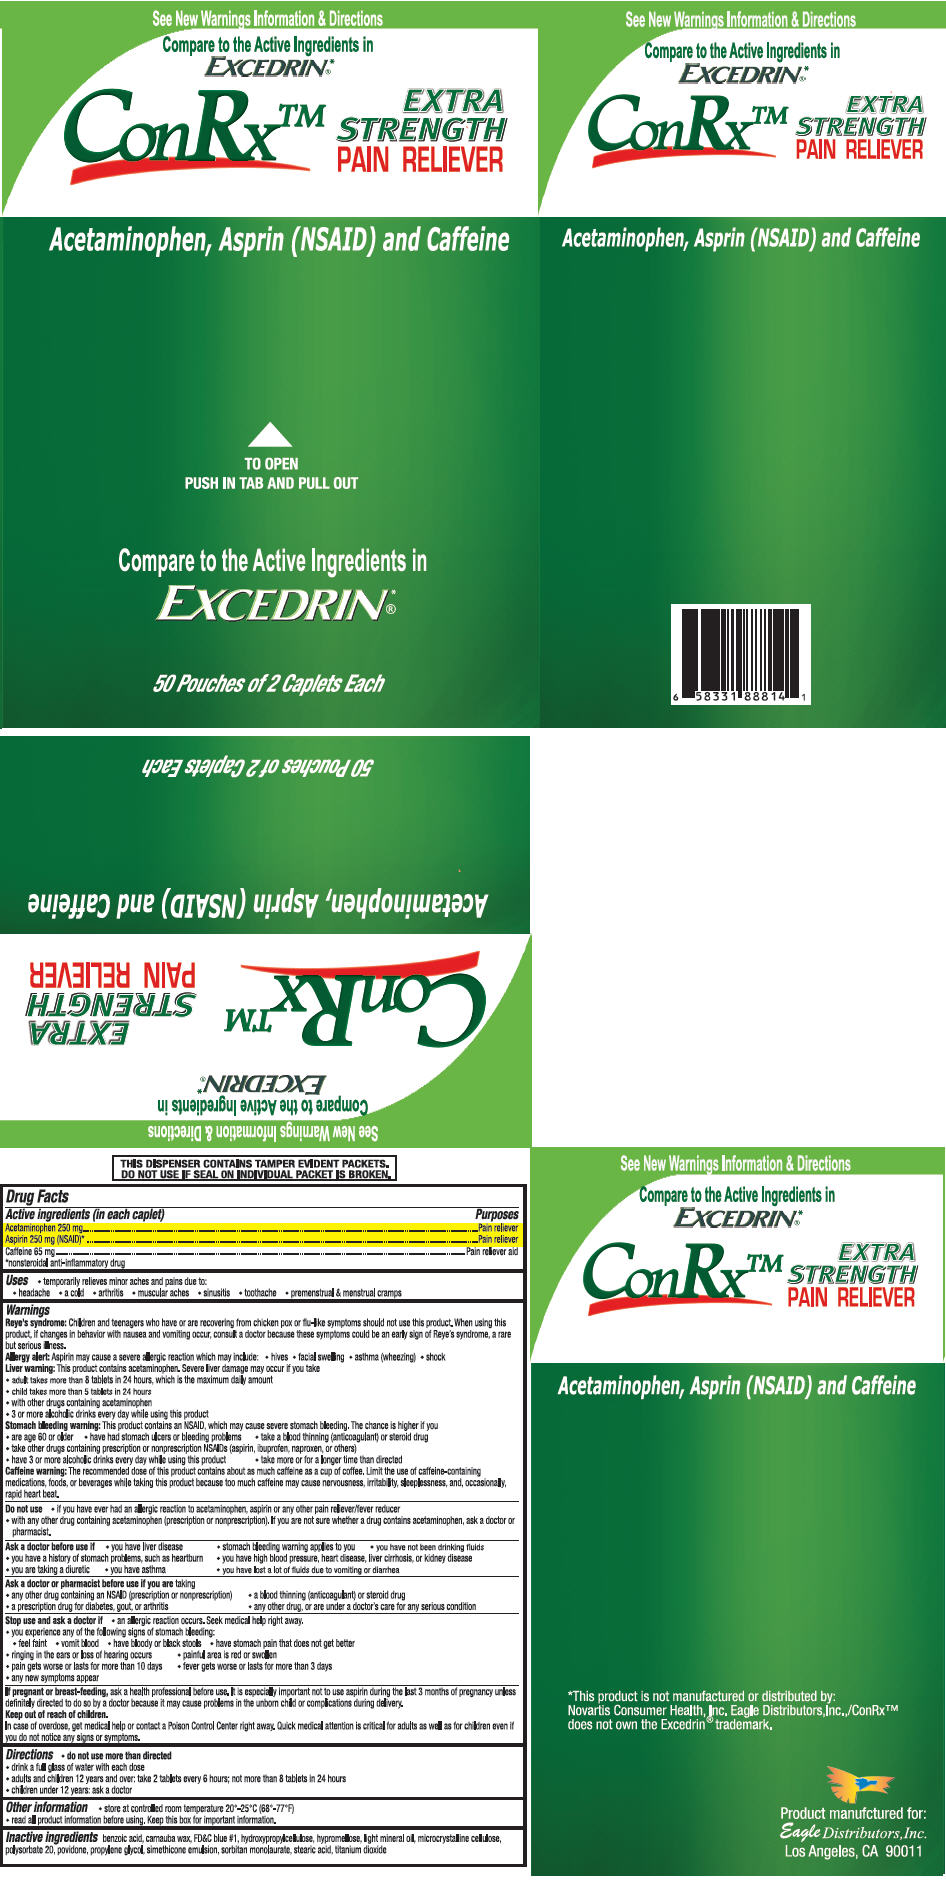 Conrx Pain Reliever (Acetaminophen, Aspirin, And Caffeine) Tablet [Eagle Distributors,inc.]